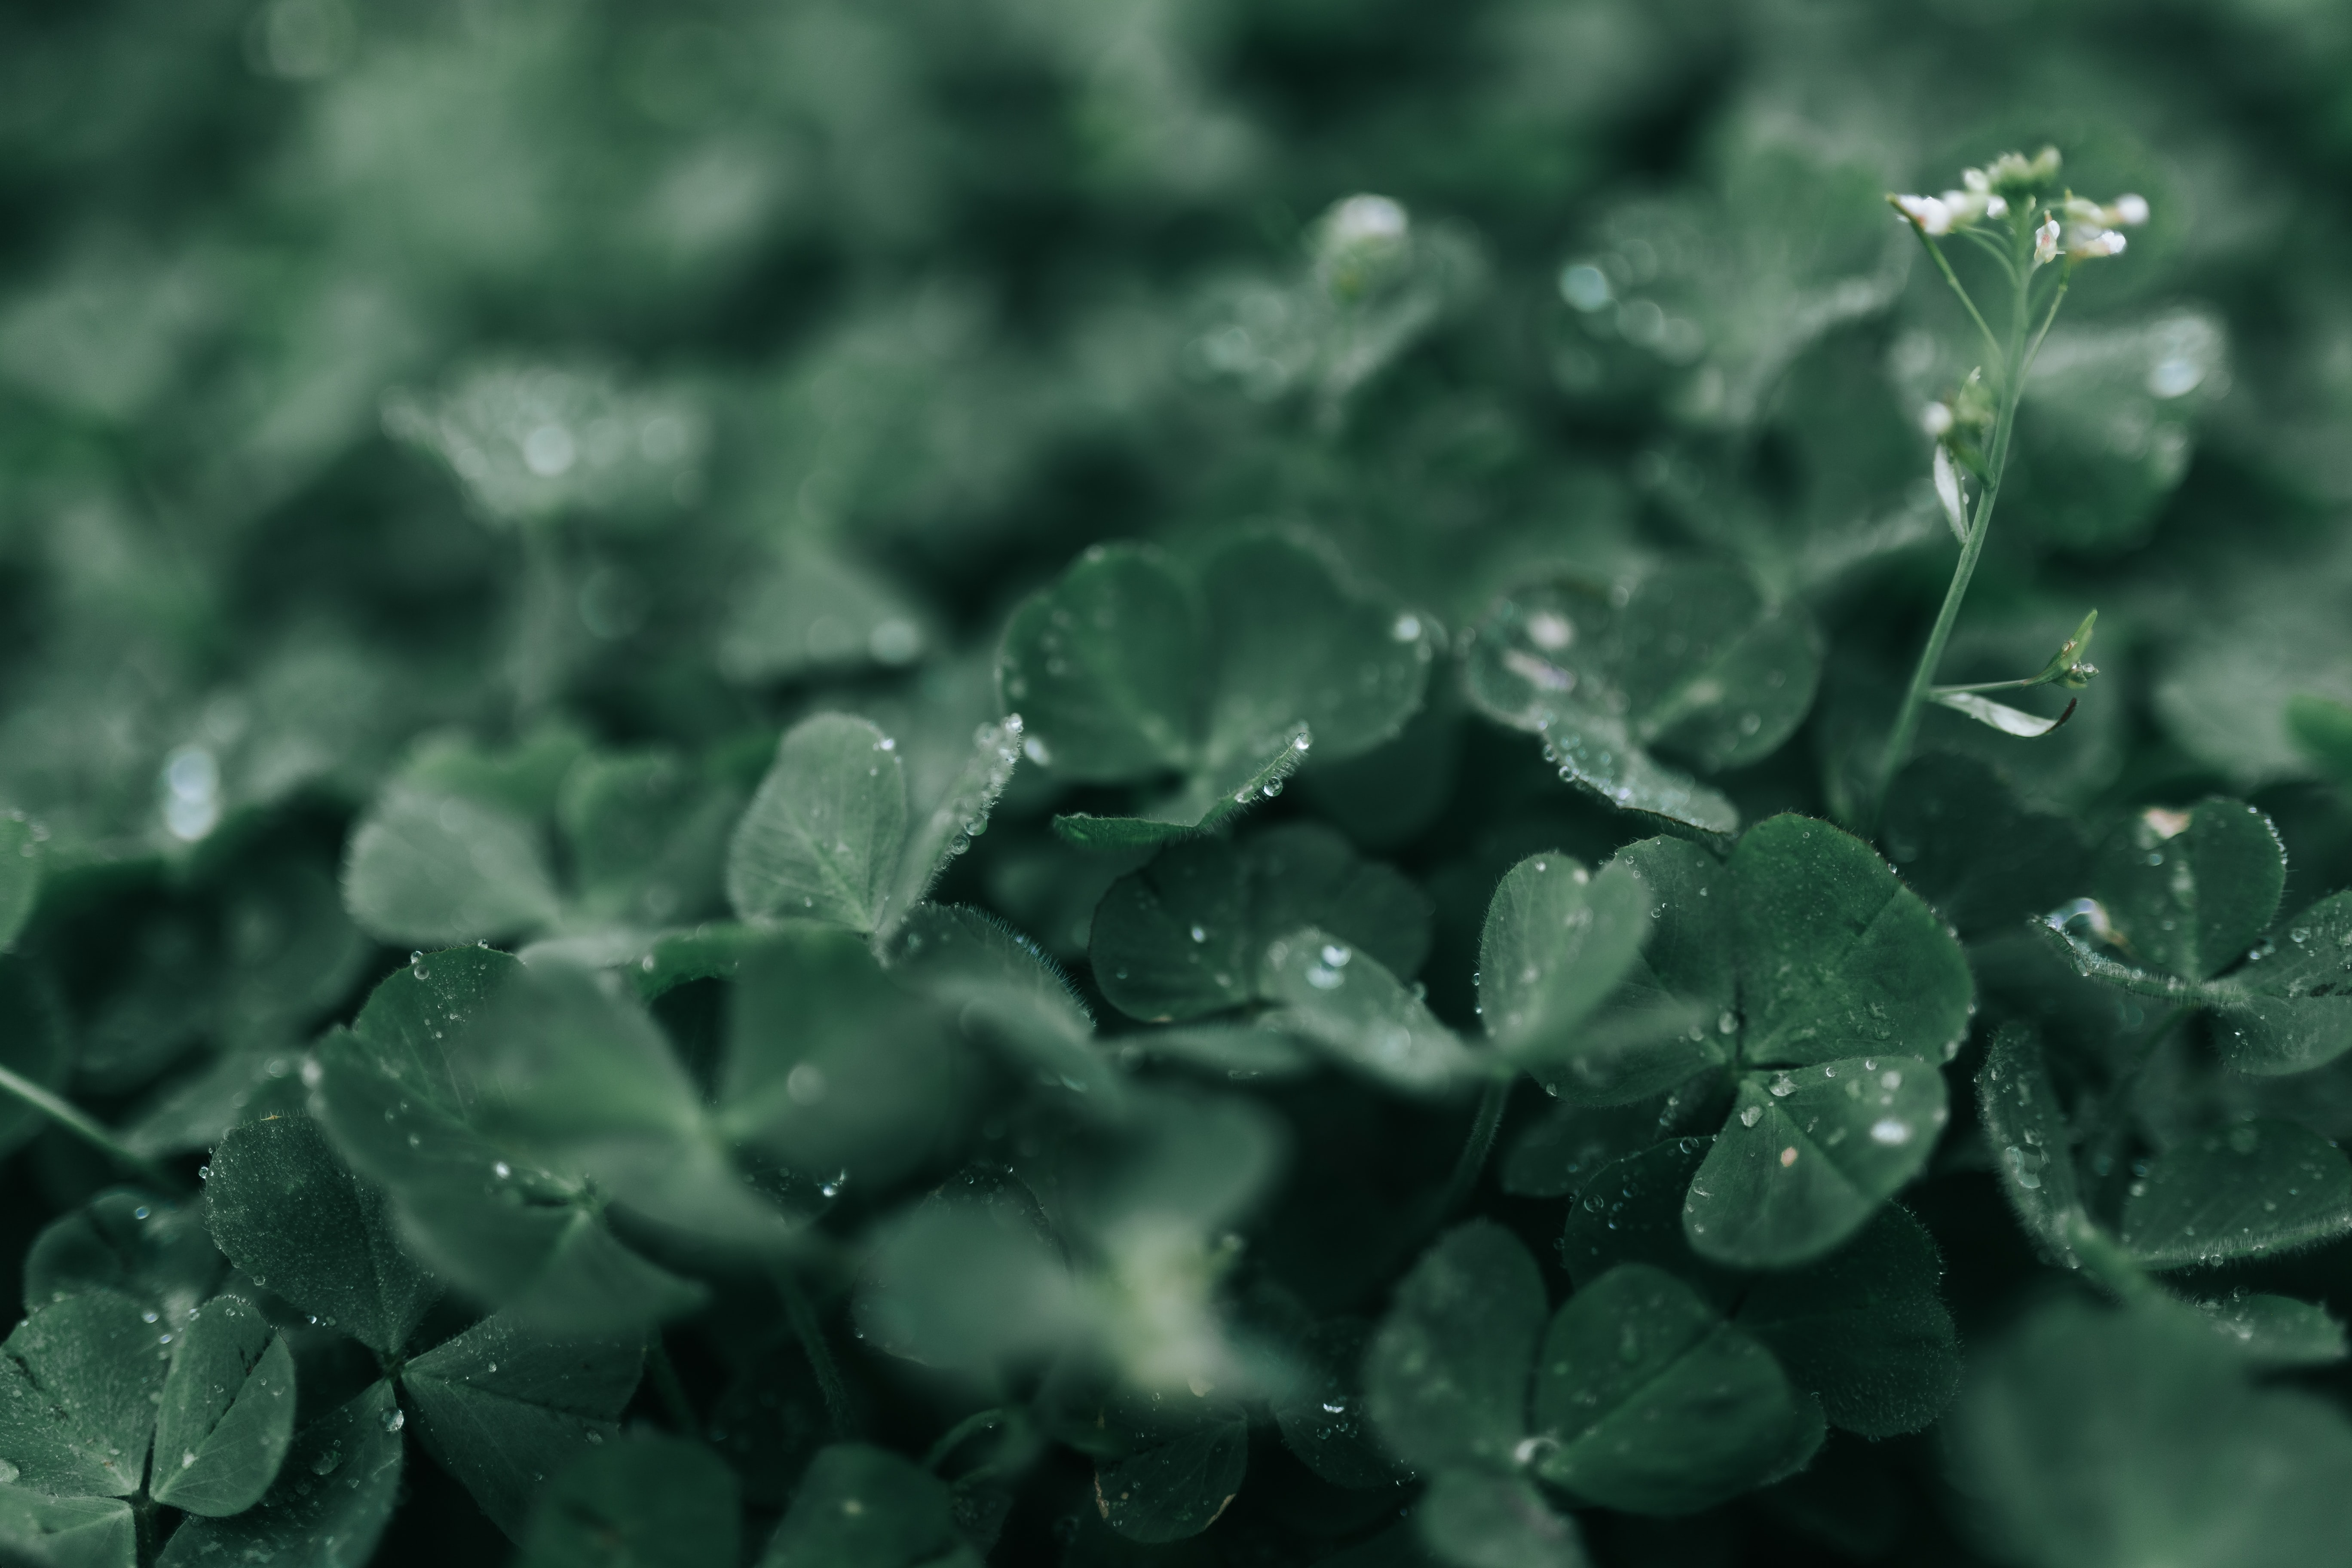 closeup photography of green clover plant